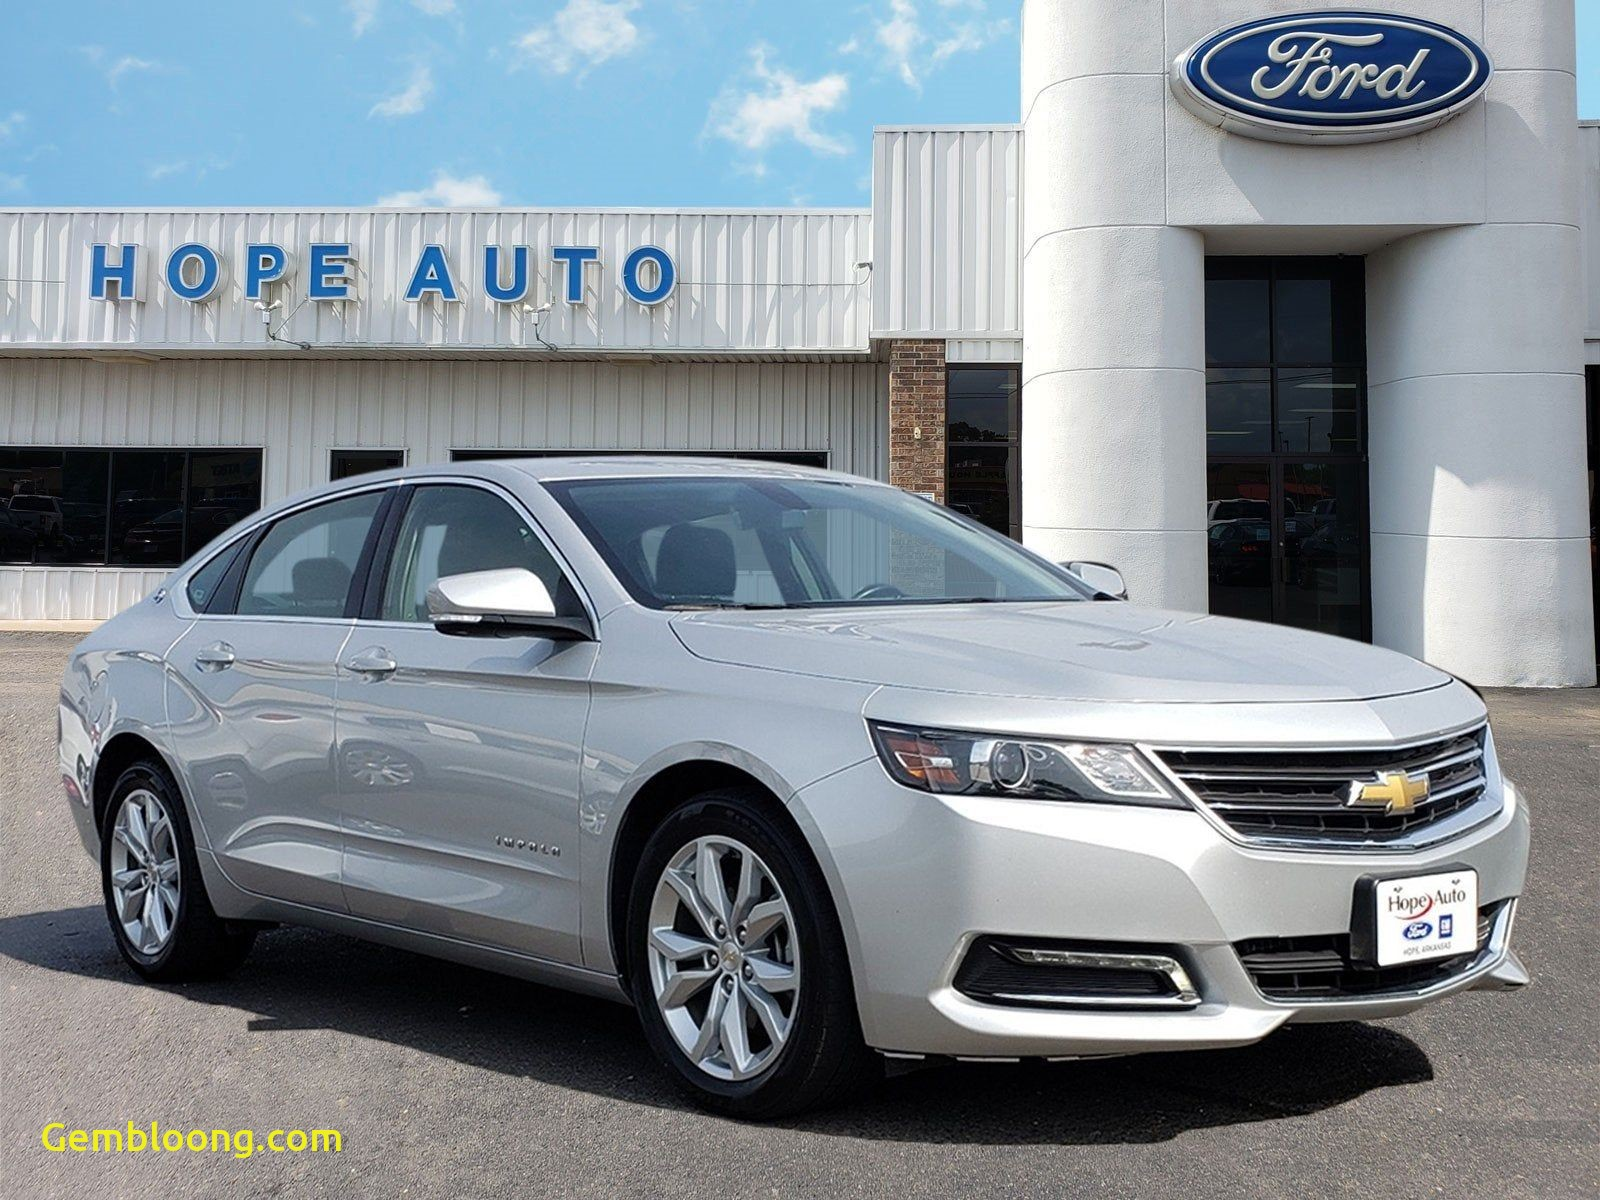 Cheap Used Cars for Sale Near Me Under 1000 Beautiful Unique Used Cars for Sale or Less